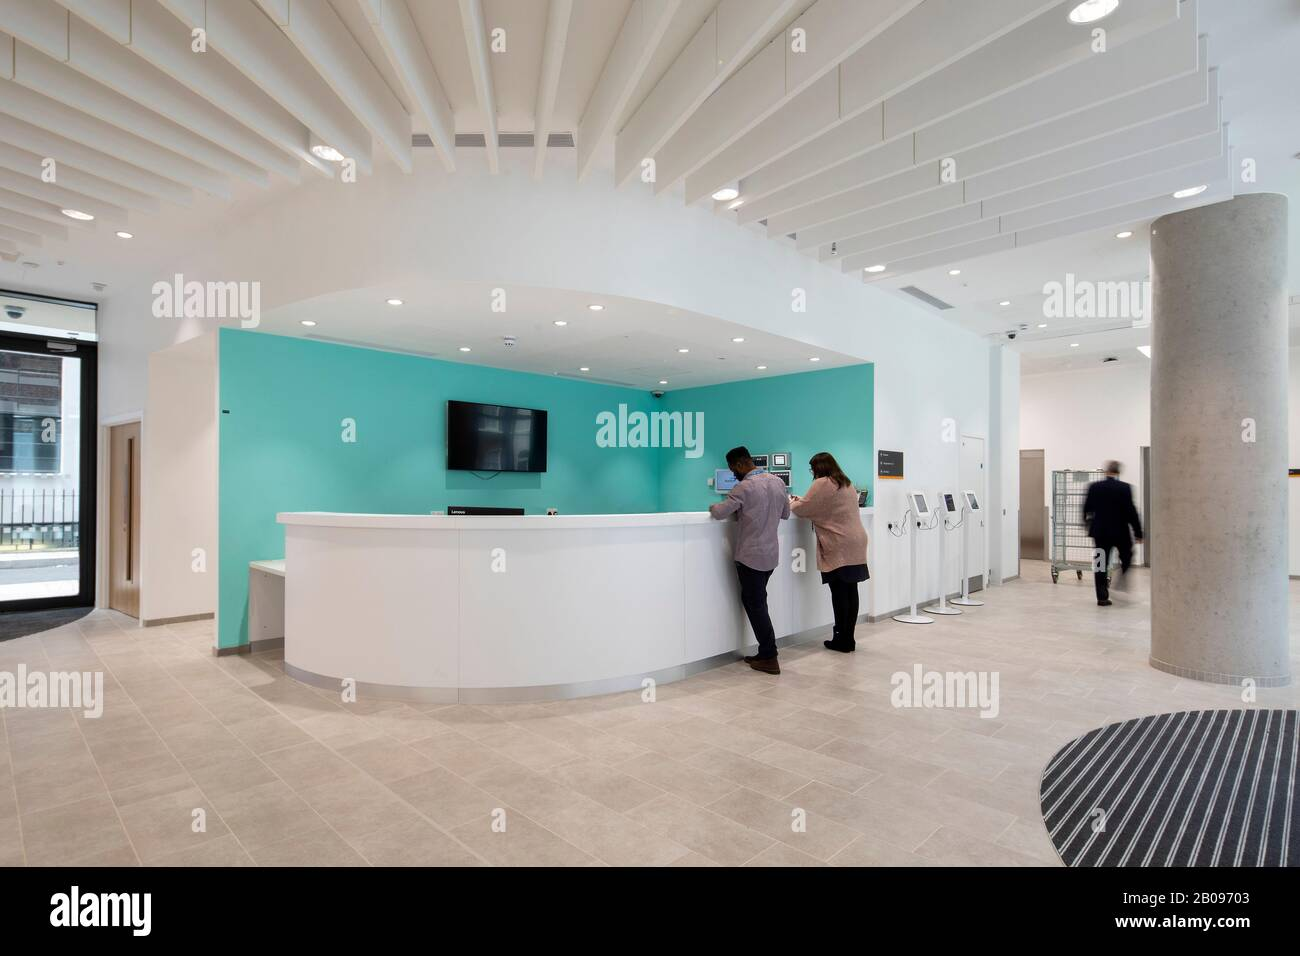 Vista interna della reception. Uclh Eye Hospital, Londra, Regno Unito. Architetto: Pilbrow e partner, 2019. Foto Stock